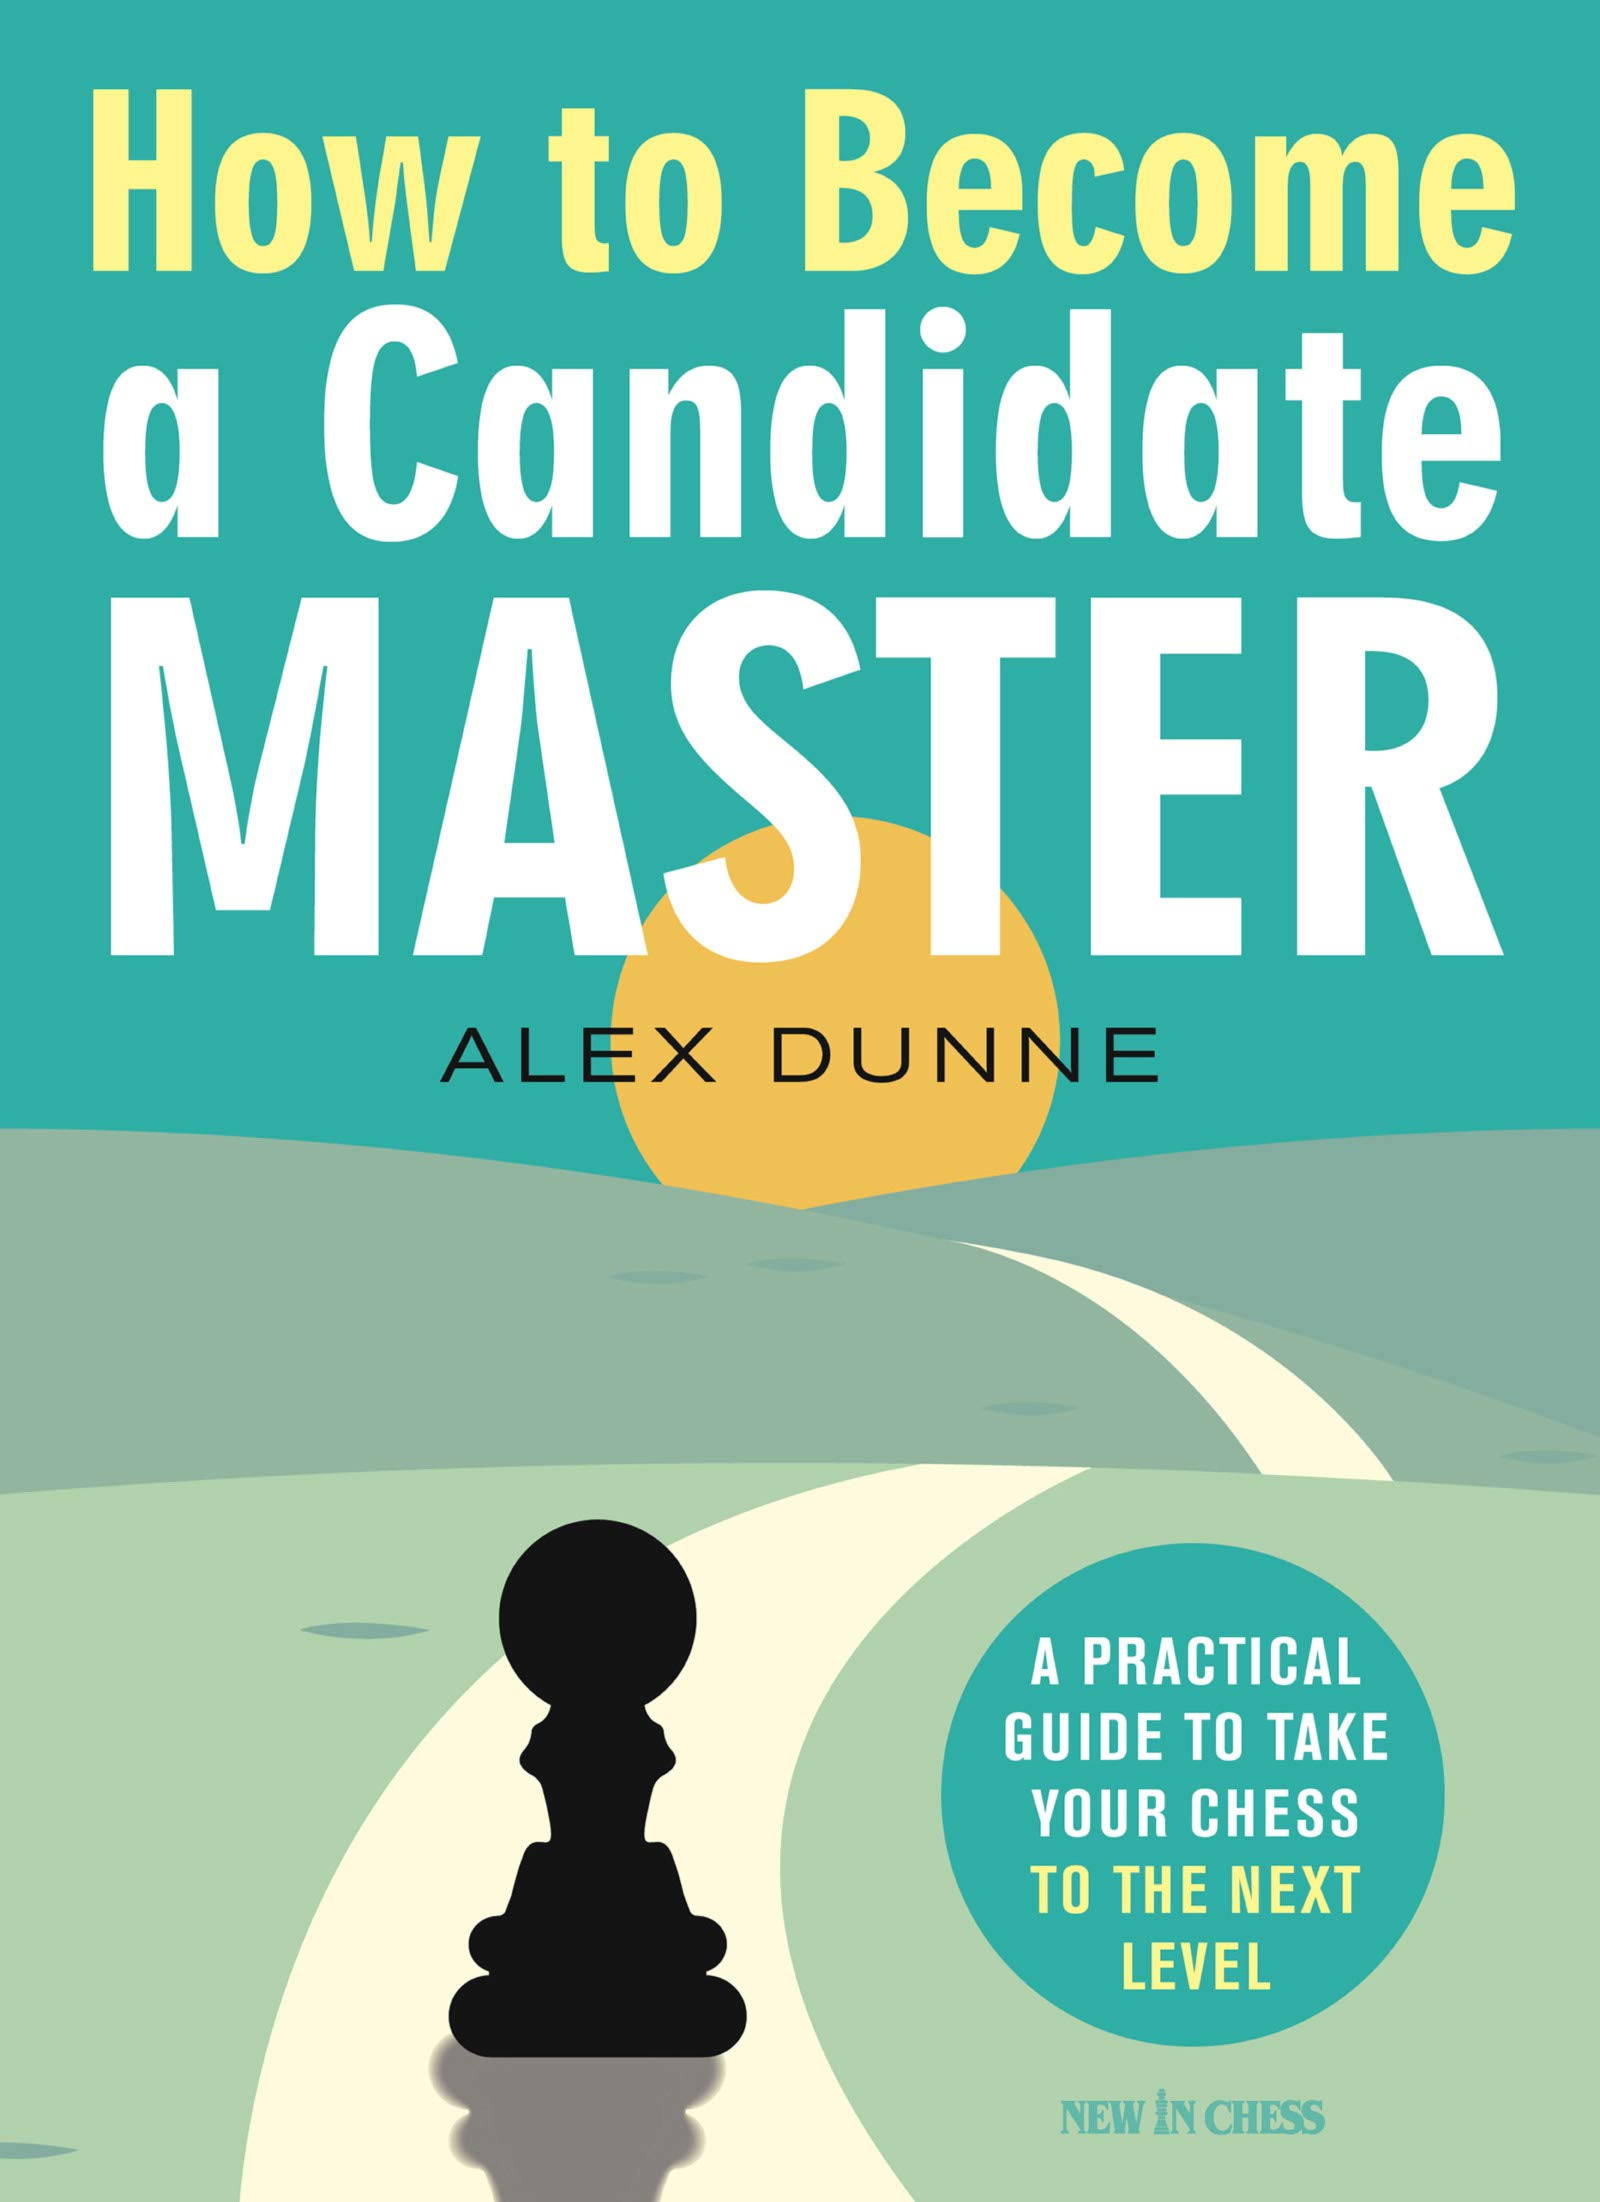 How to Become a Candidate Master: A Practical Guide to Take Your Chess to the Next Level, FM Alex Dunne, New in Chess, December 2020, ISBN-13  :  978-9056919214